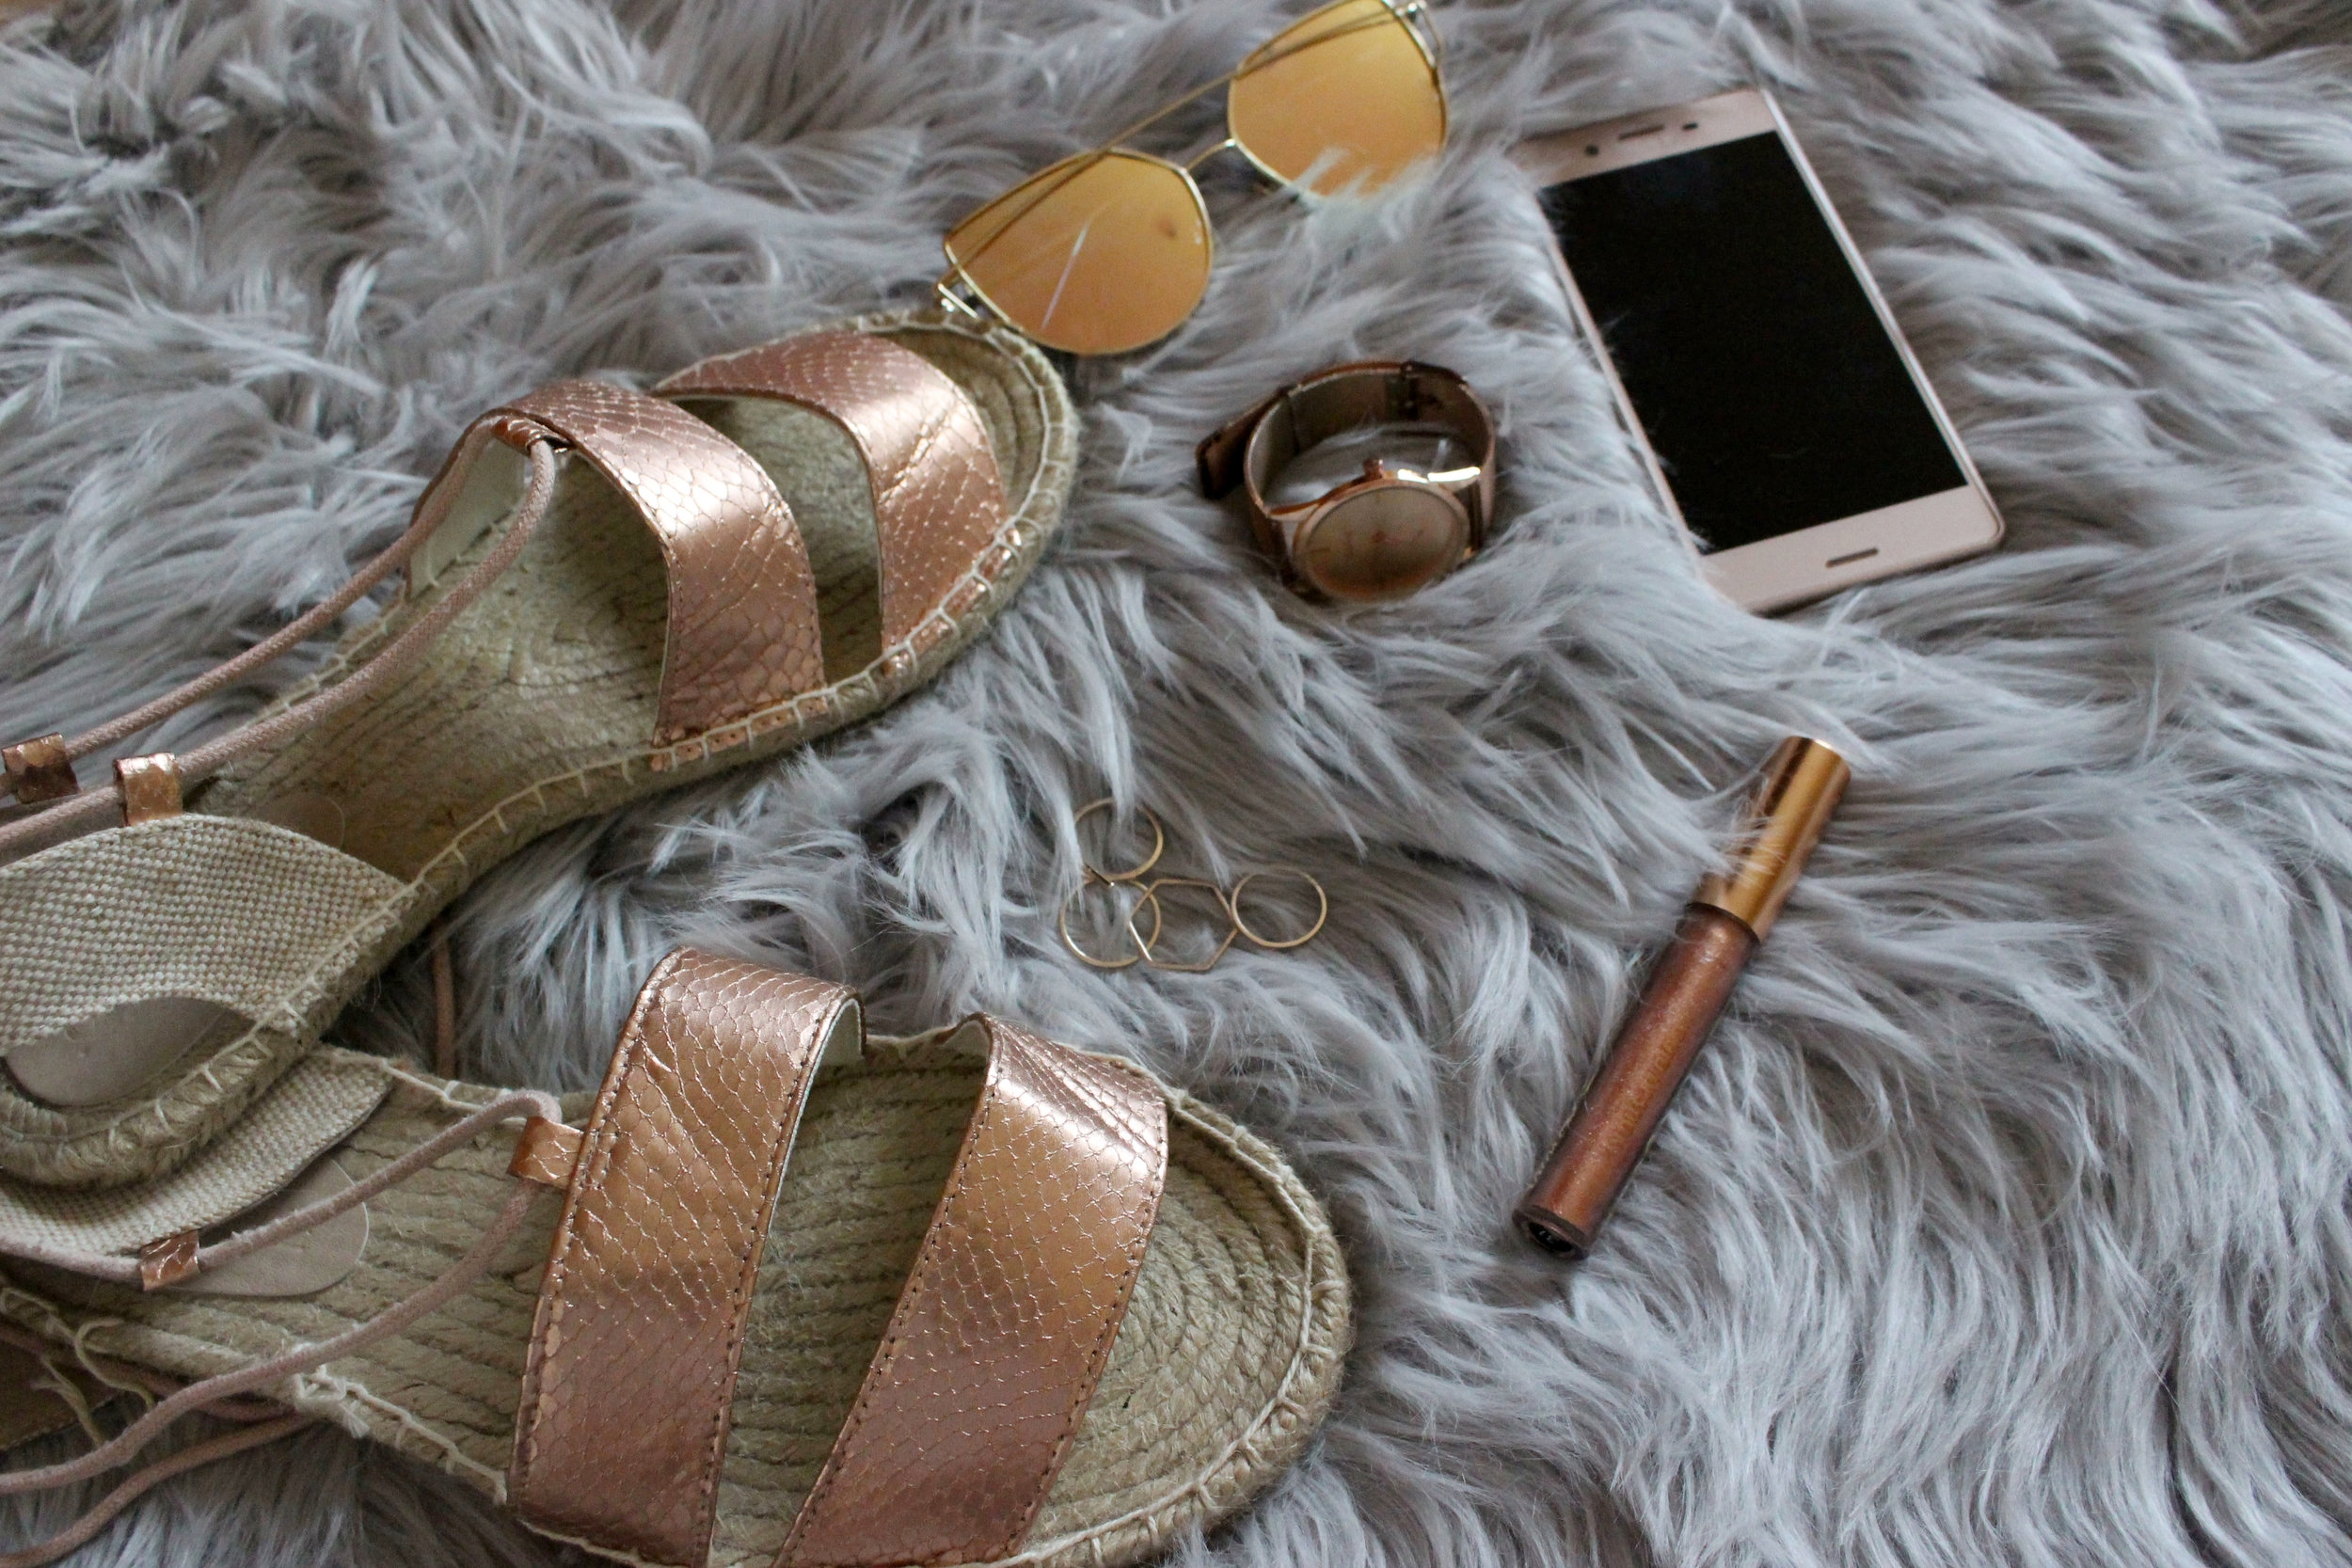 Rose Gold Sandals, Rose Gold Accessories, Rose Gold Lipstick, Rose Gold Xperia X